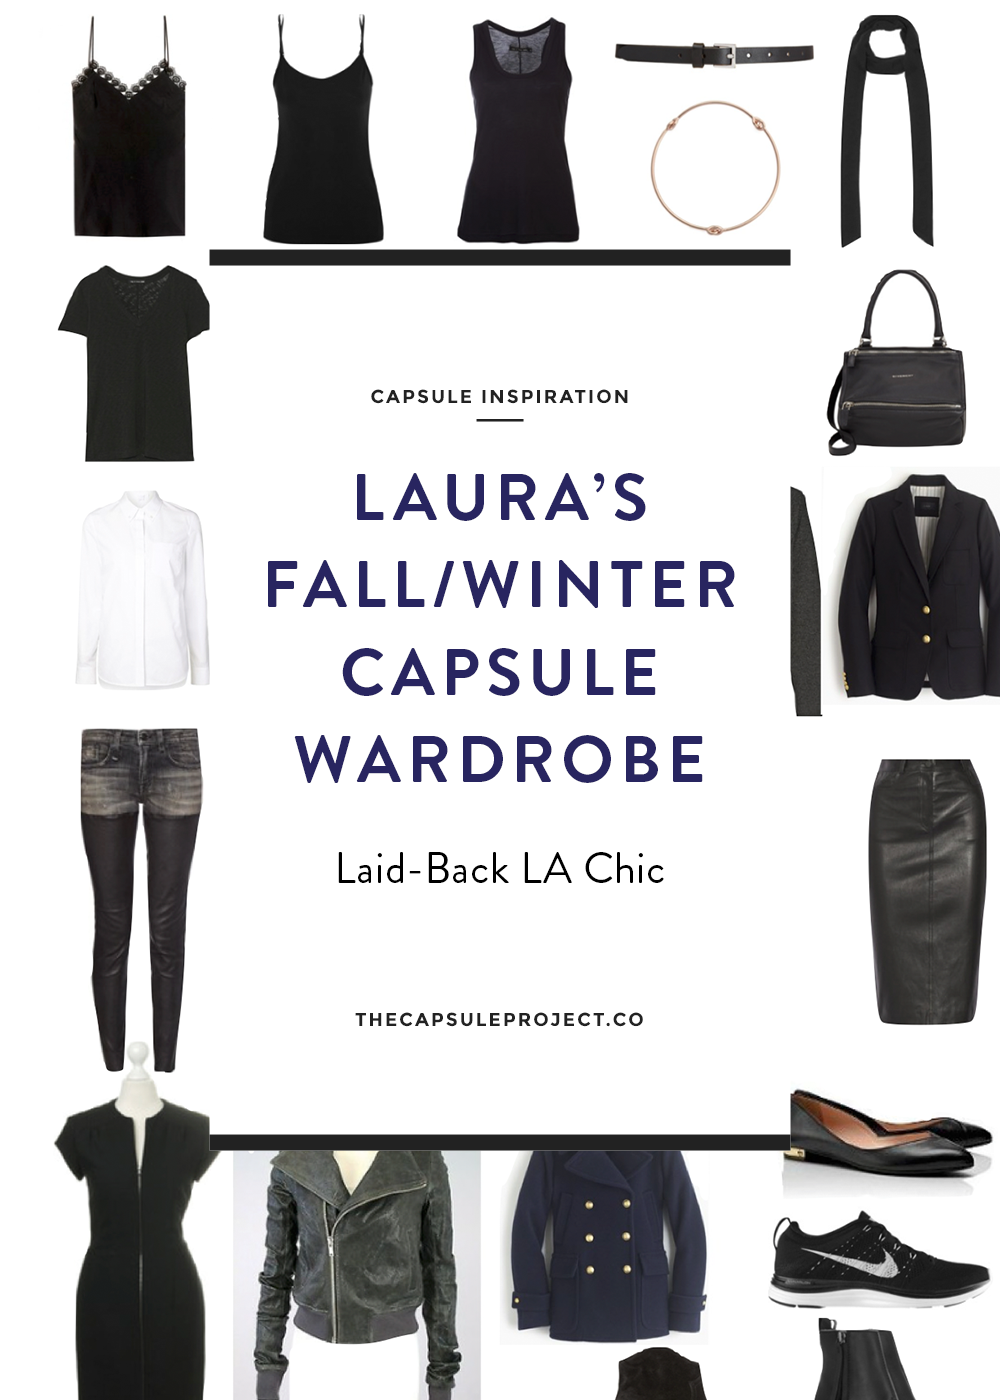 Laura's laid-back LA Chic is just the capsule wardrobe inspiration you need!